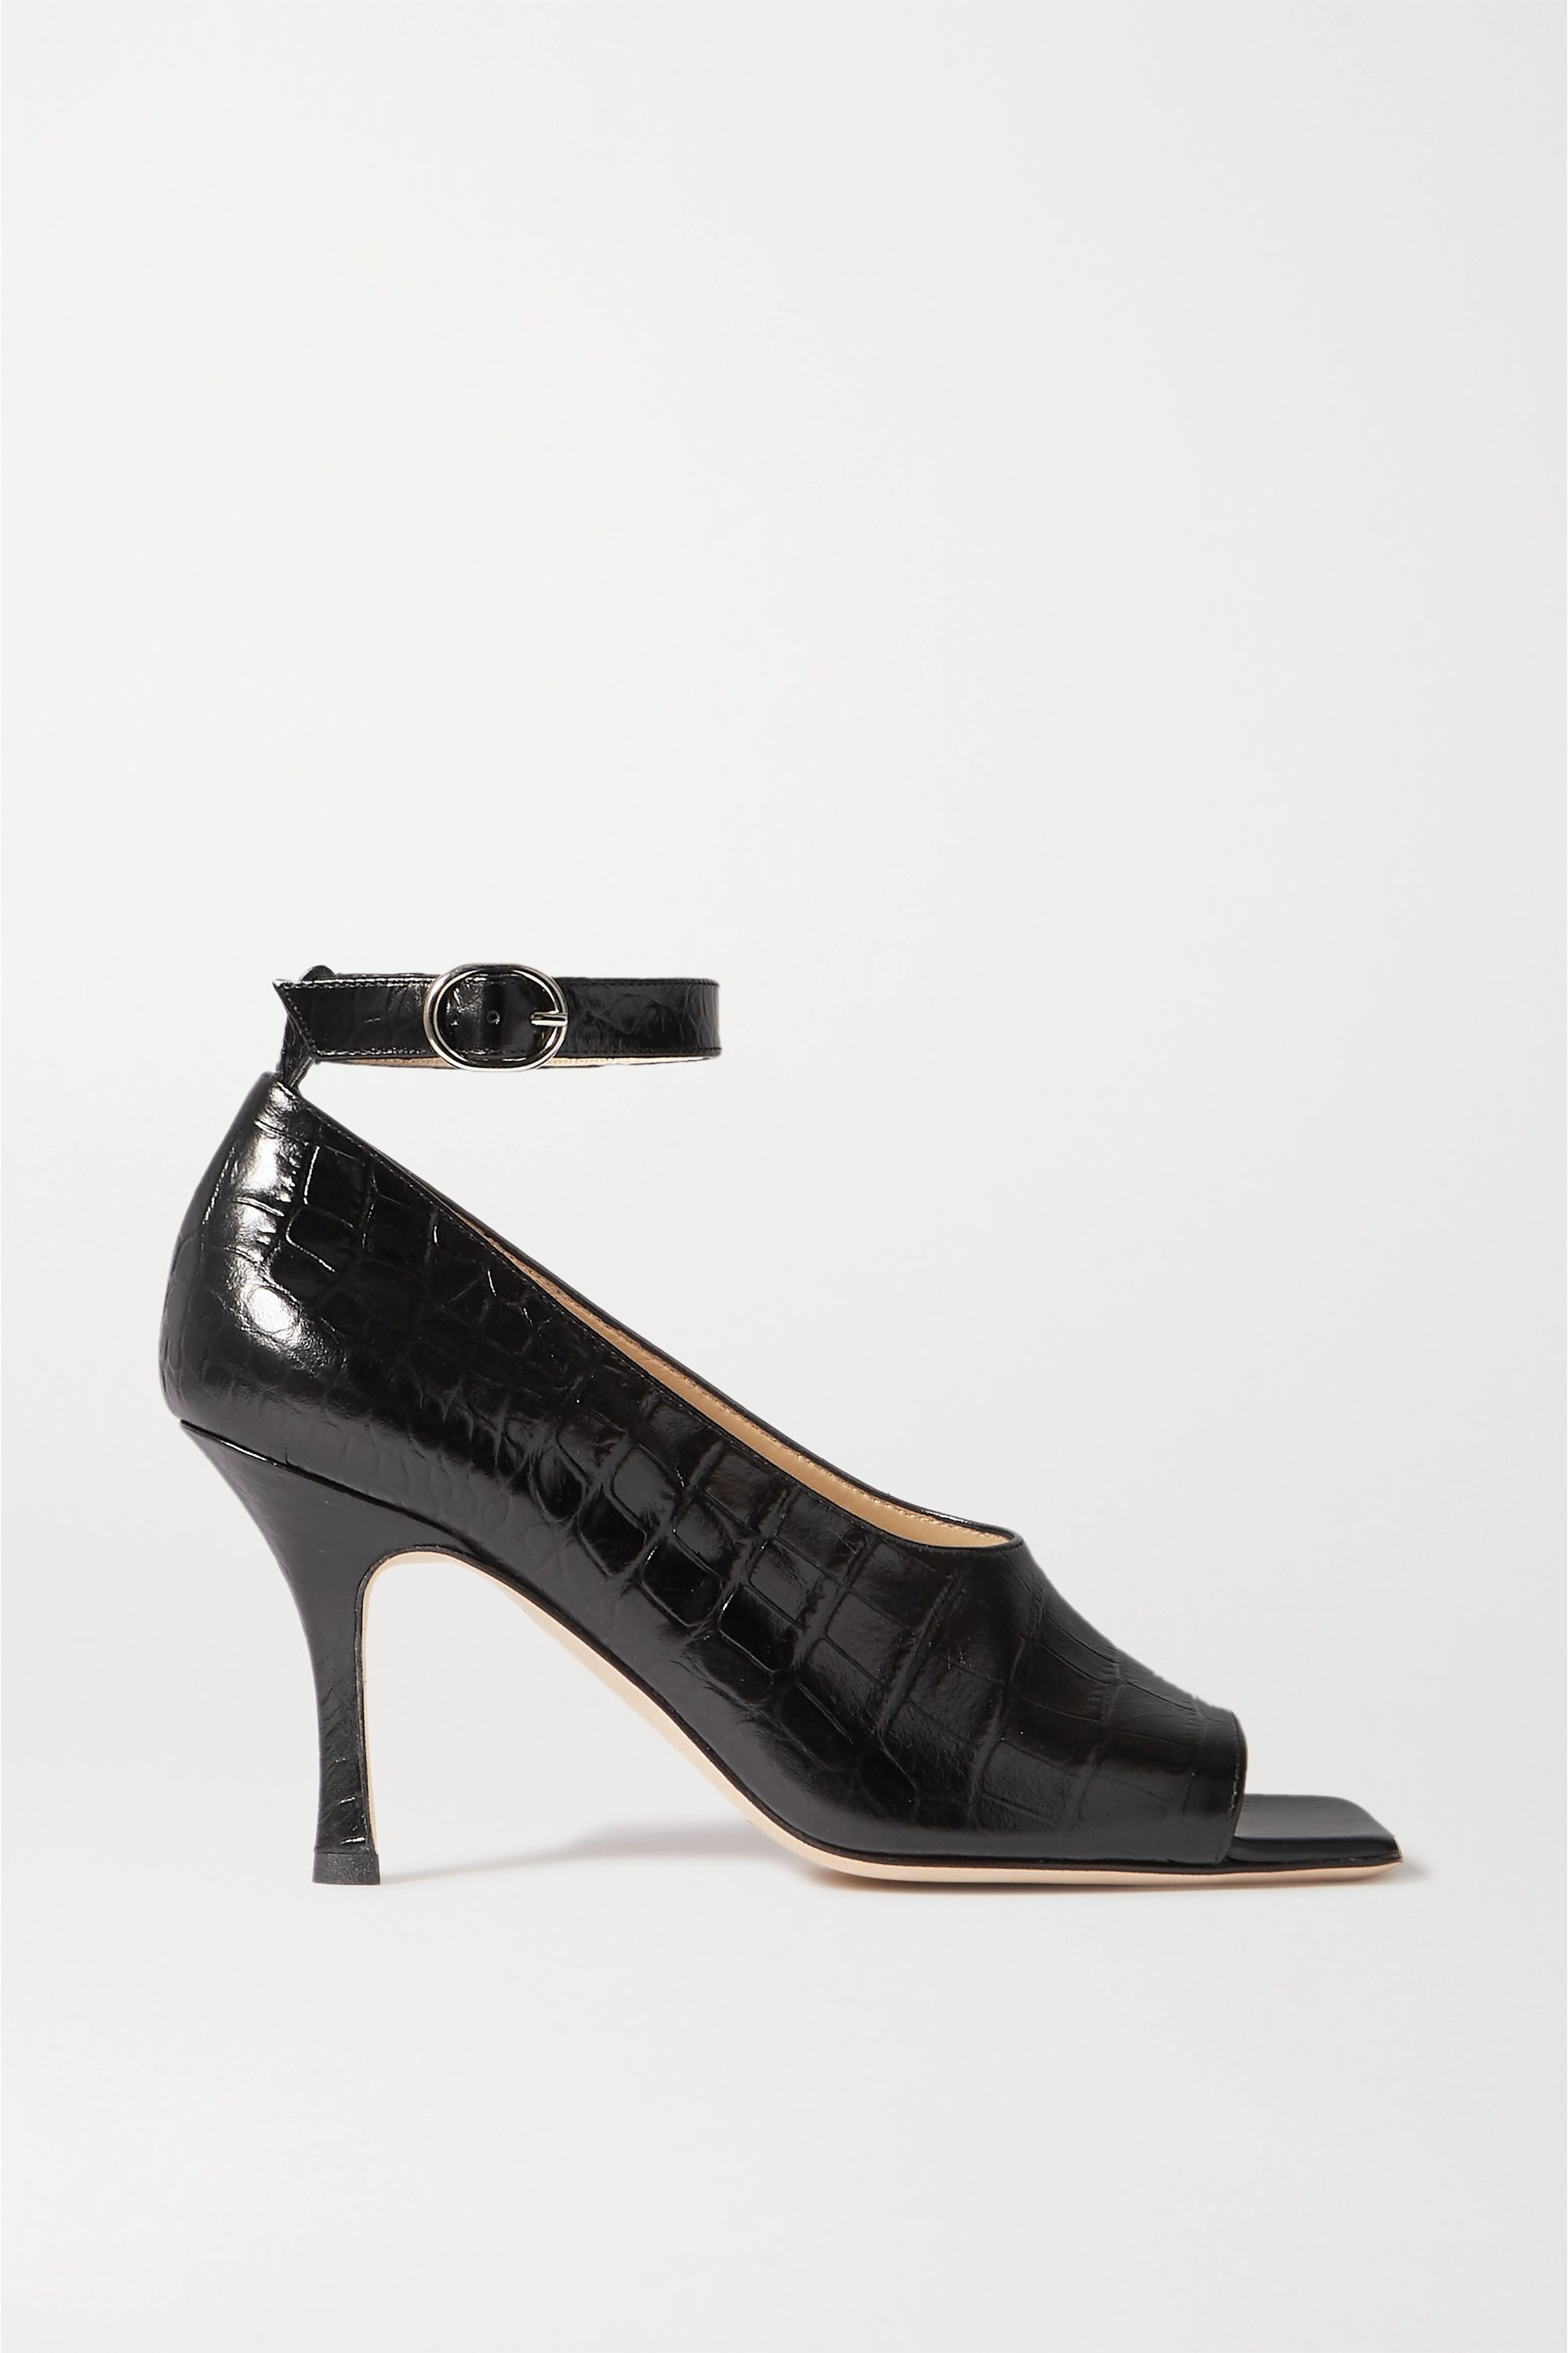 A.W.A.K.E. MODE Erica glossed croc-effect leather pumps